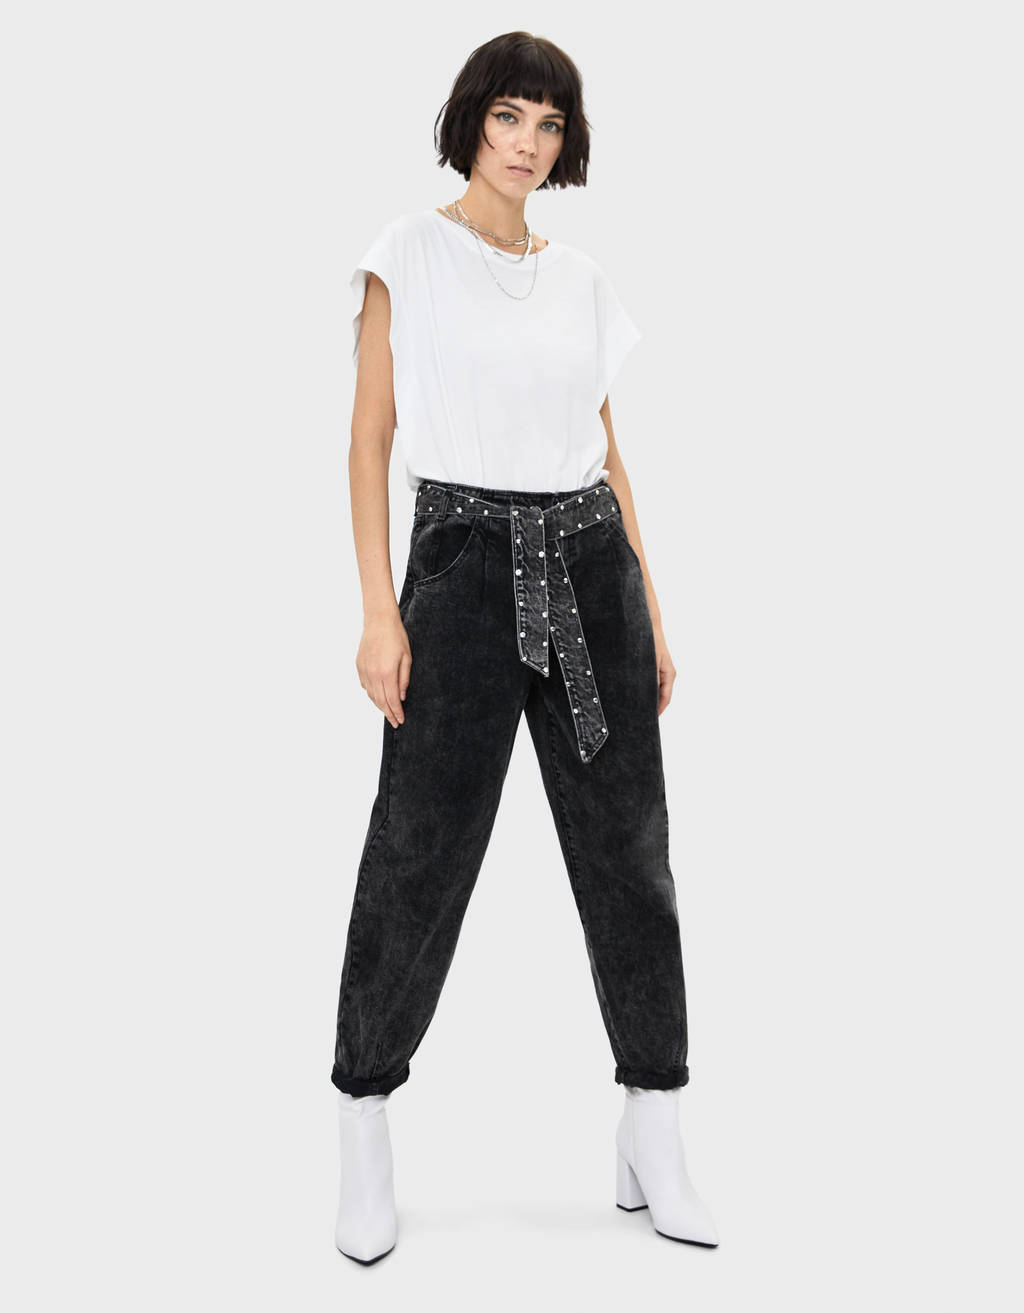 Balloon fit jeans with belt and shimmer